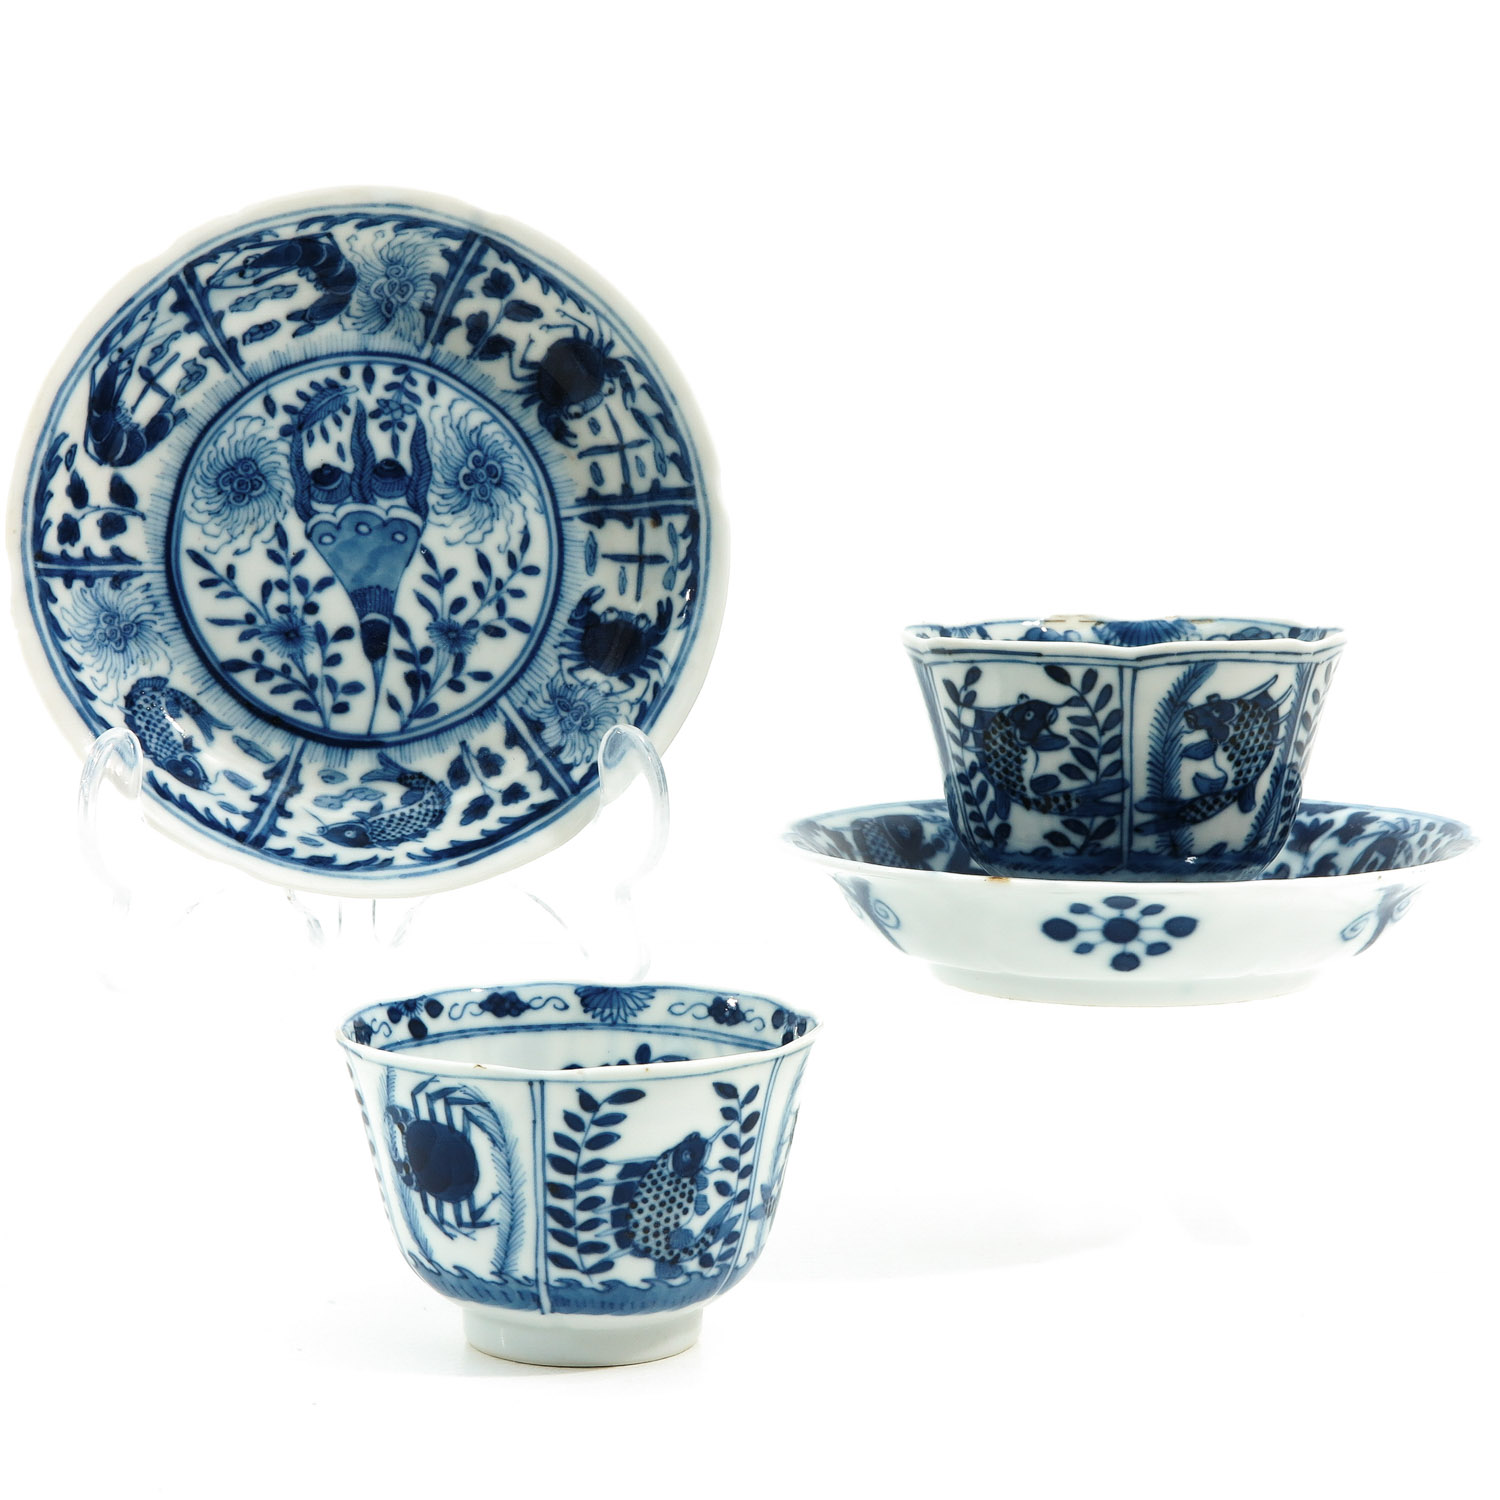 A Pair of Blue and White Cups and Saucers